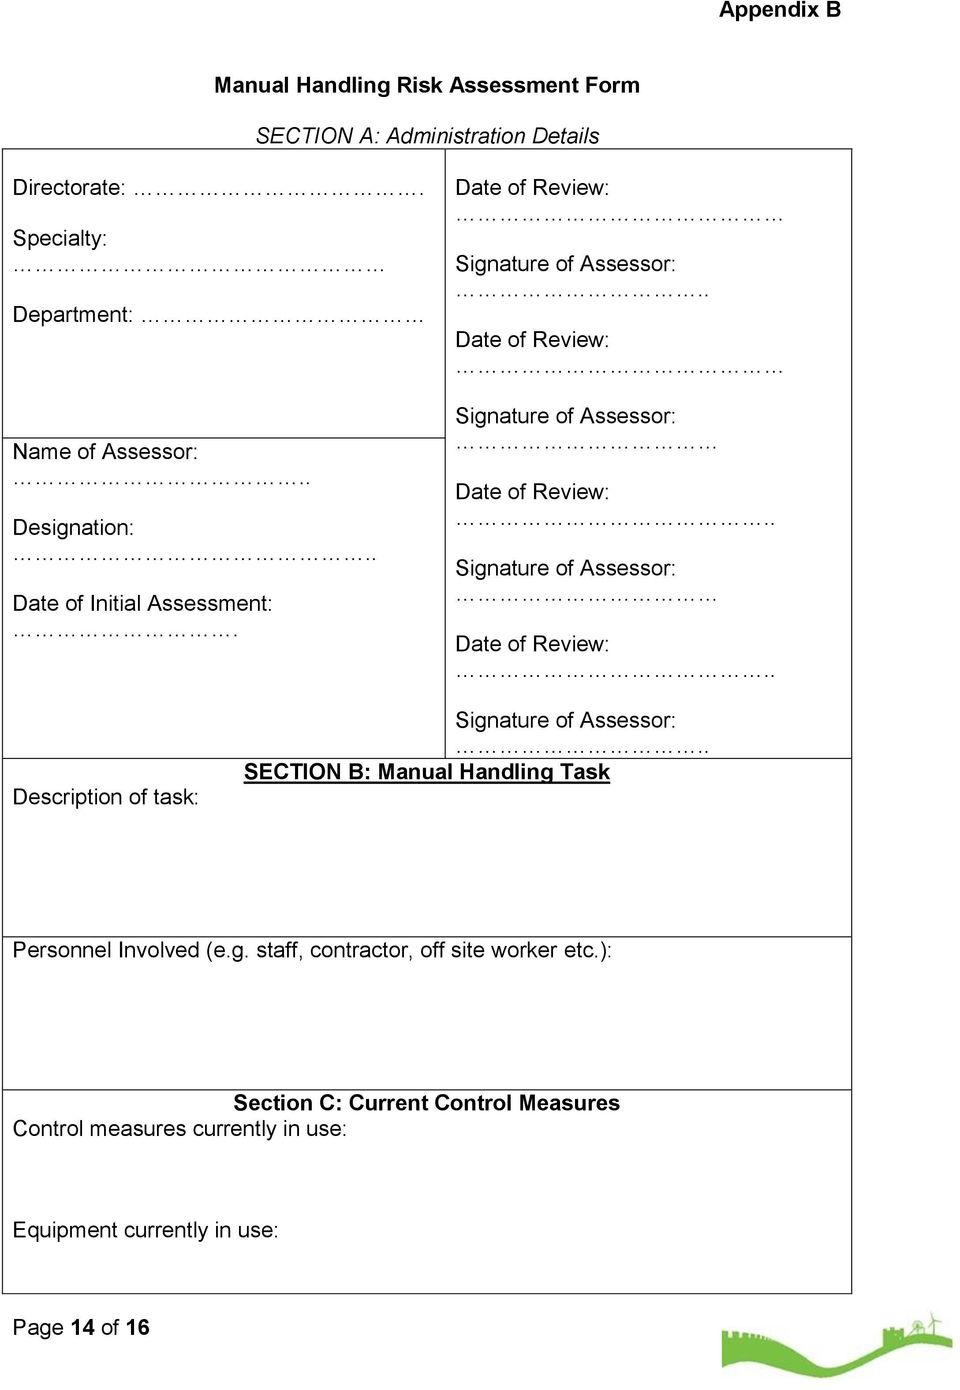 . Signature of Assessor: Date of Review:.. Description of task: Signature of Assessor:.. SECTION B: Manual Handling Task Personnel Involved (e.g. staff, contractor, off site worker etc.